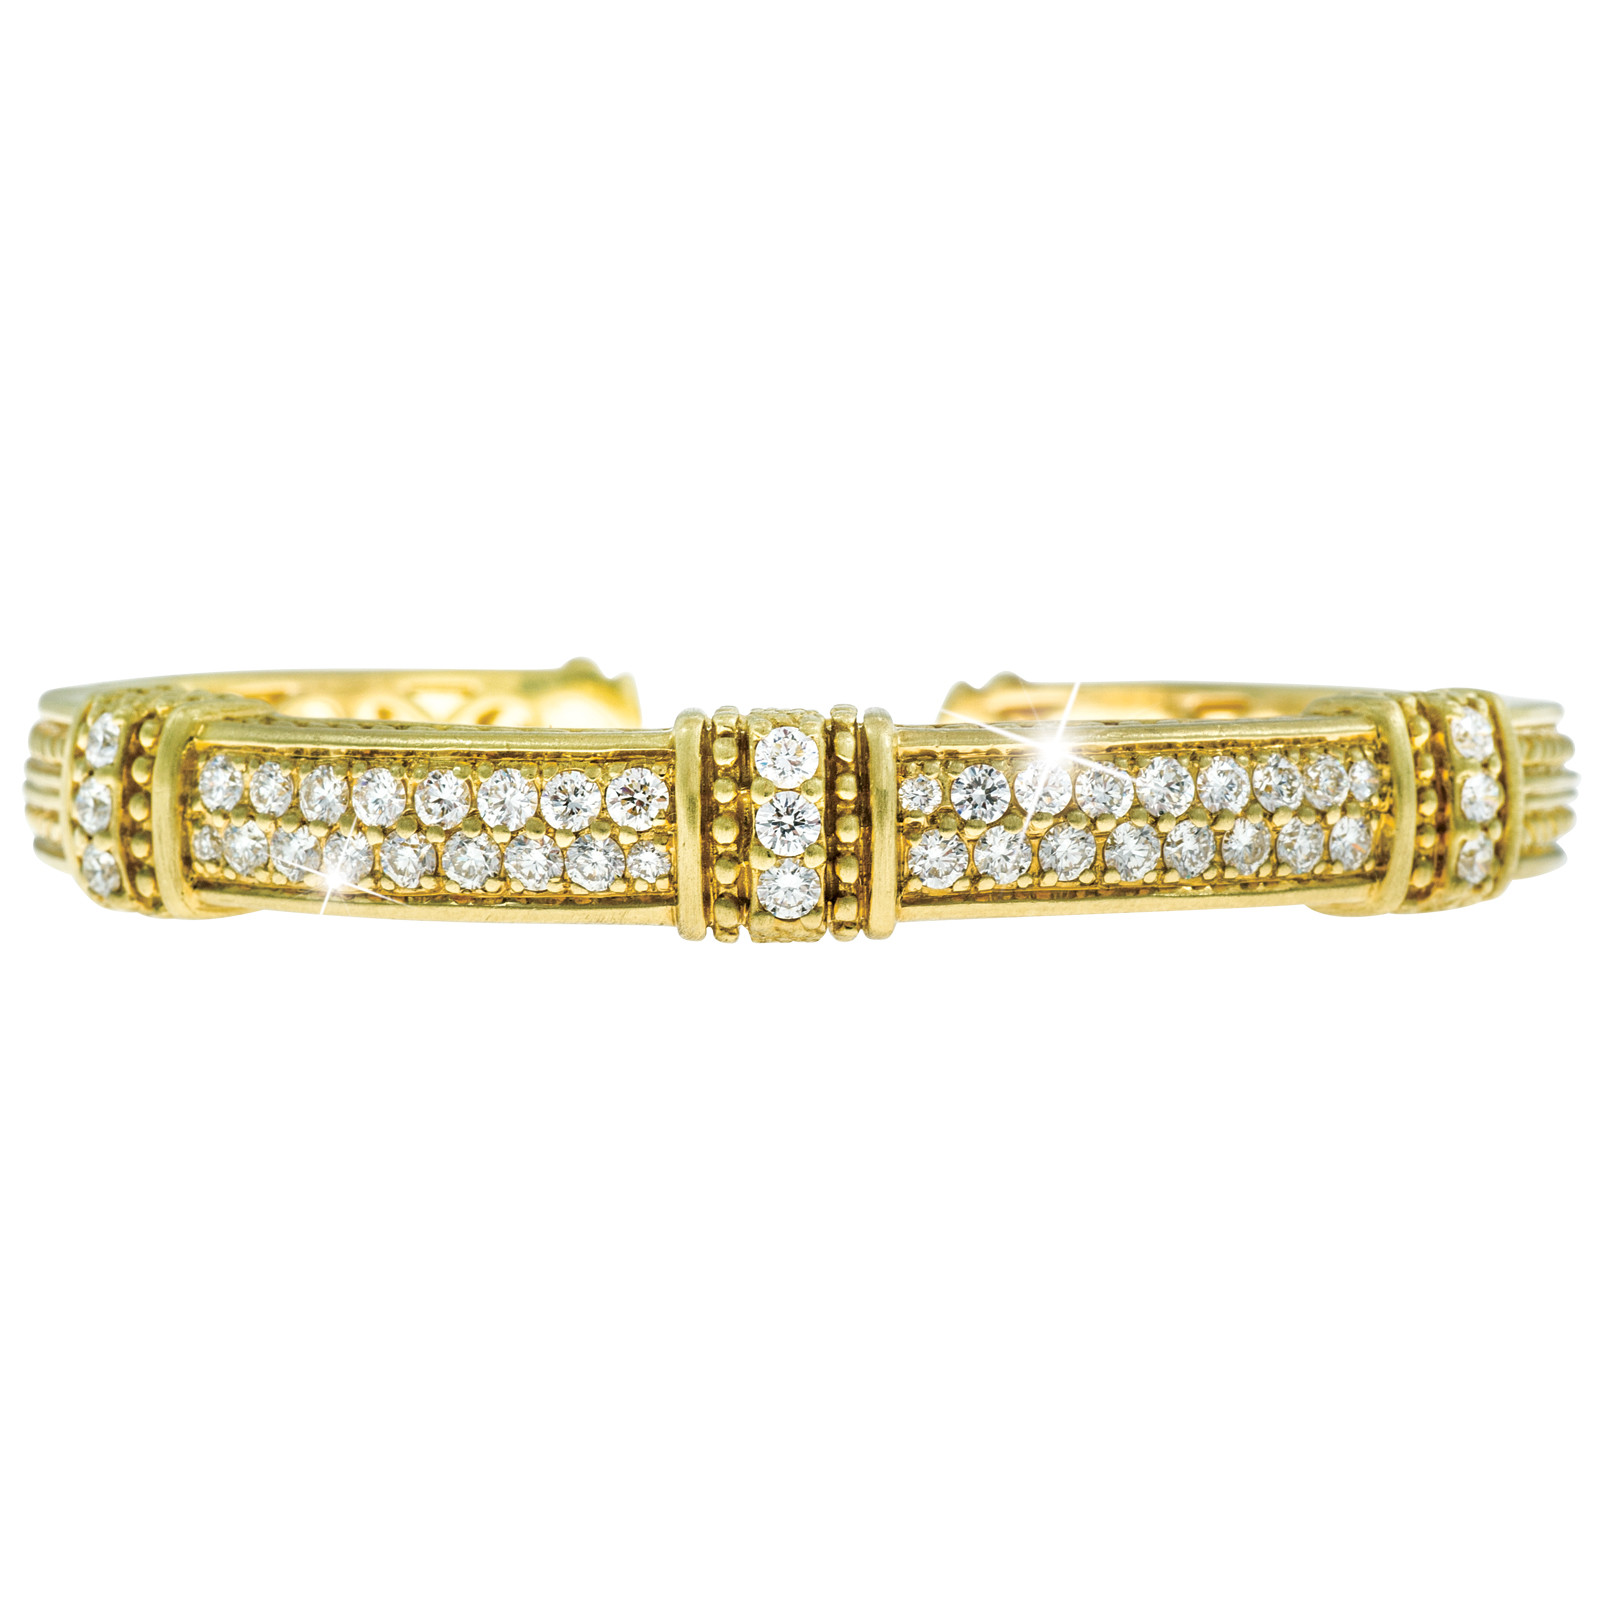 Vintage Judith Ripka 2.00 CTW Diamond Bangle